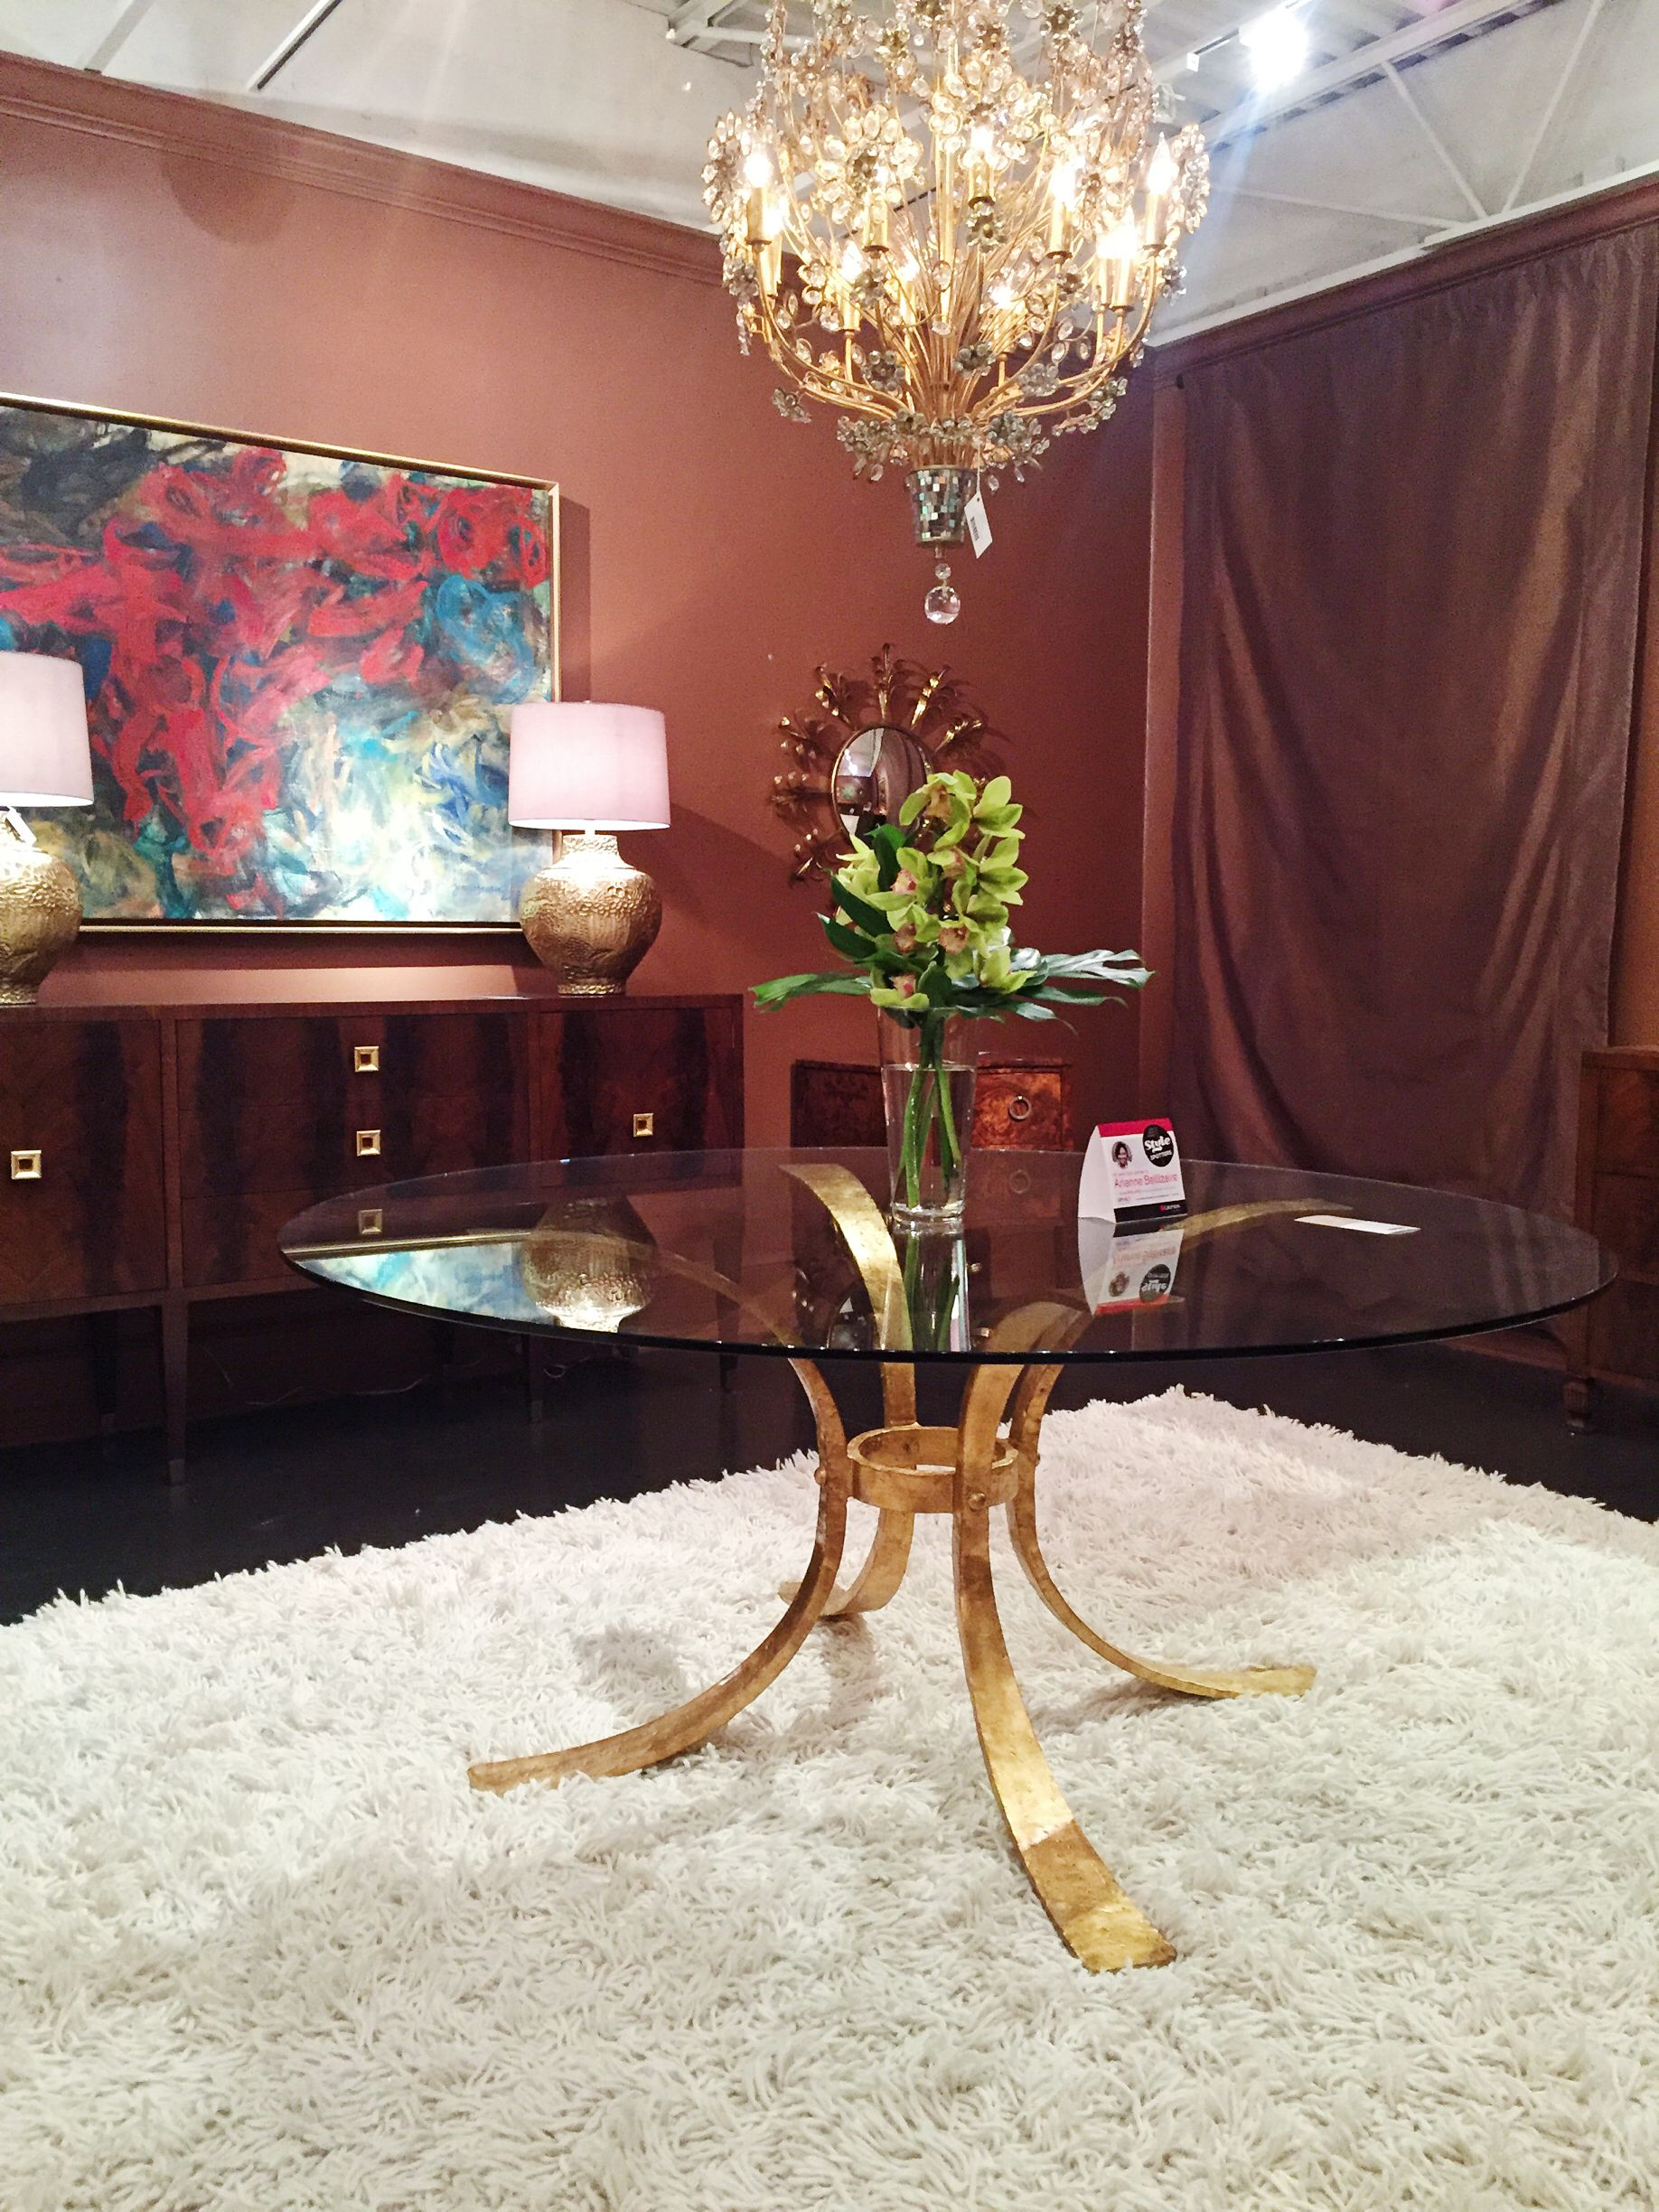 The Gilded Retro Dining Table Base By Modern History Is An Italian Reproduction With A Hammered